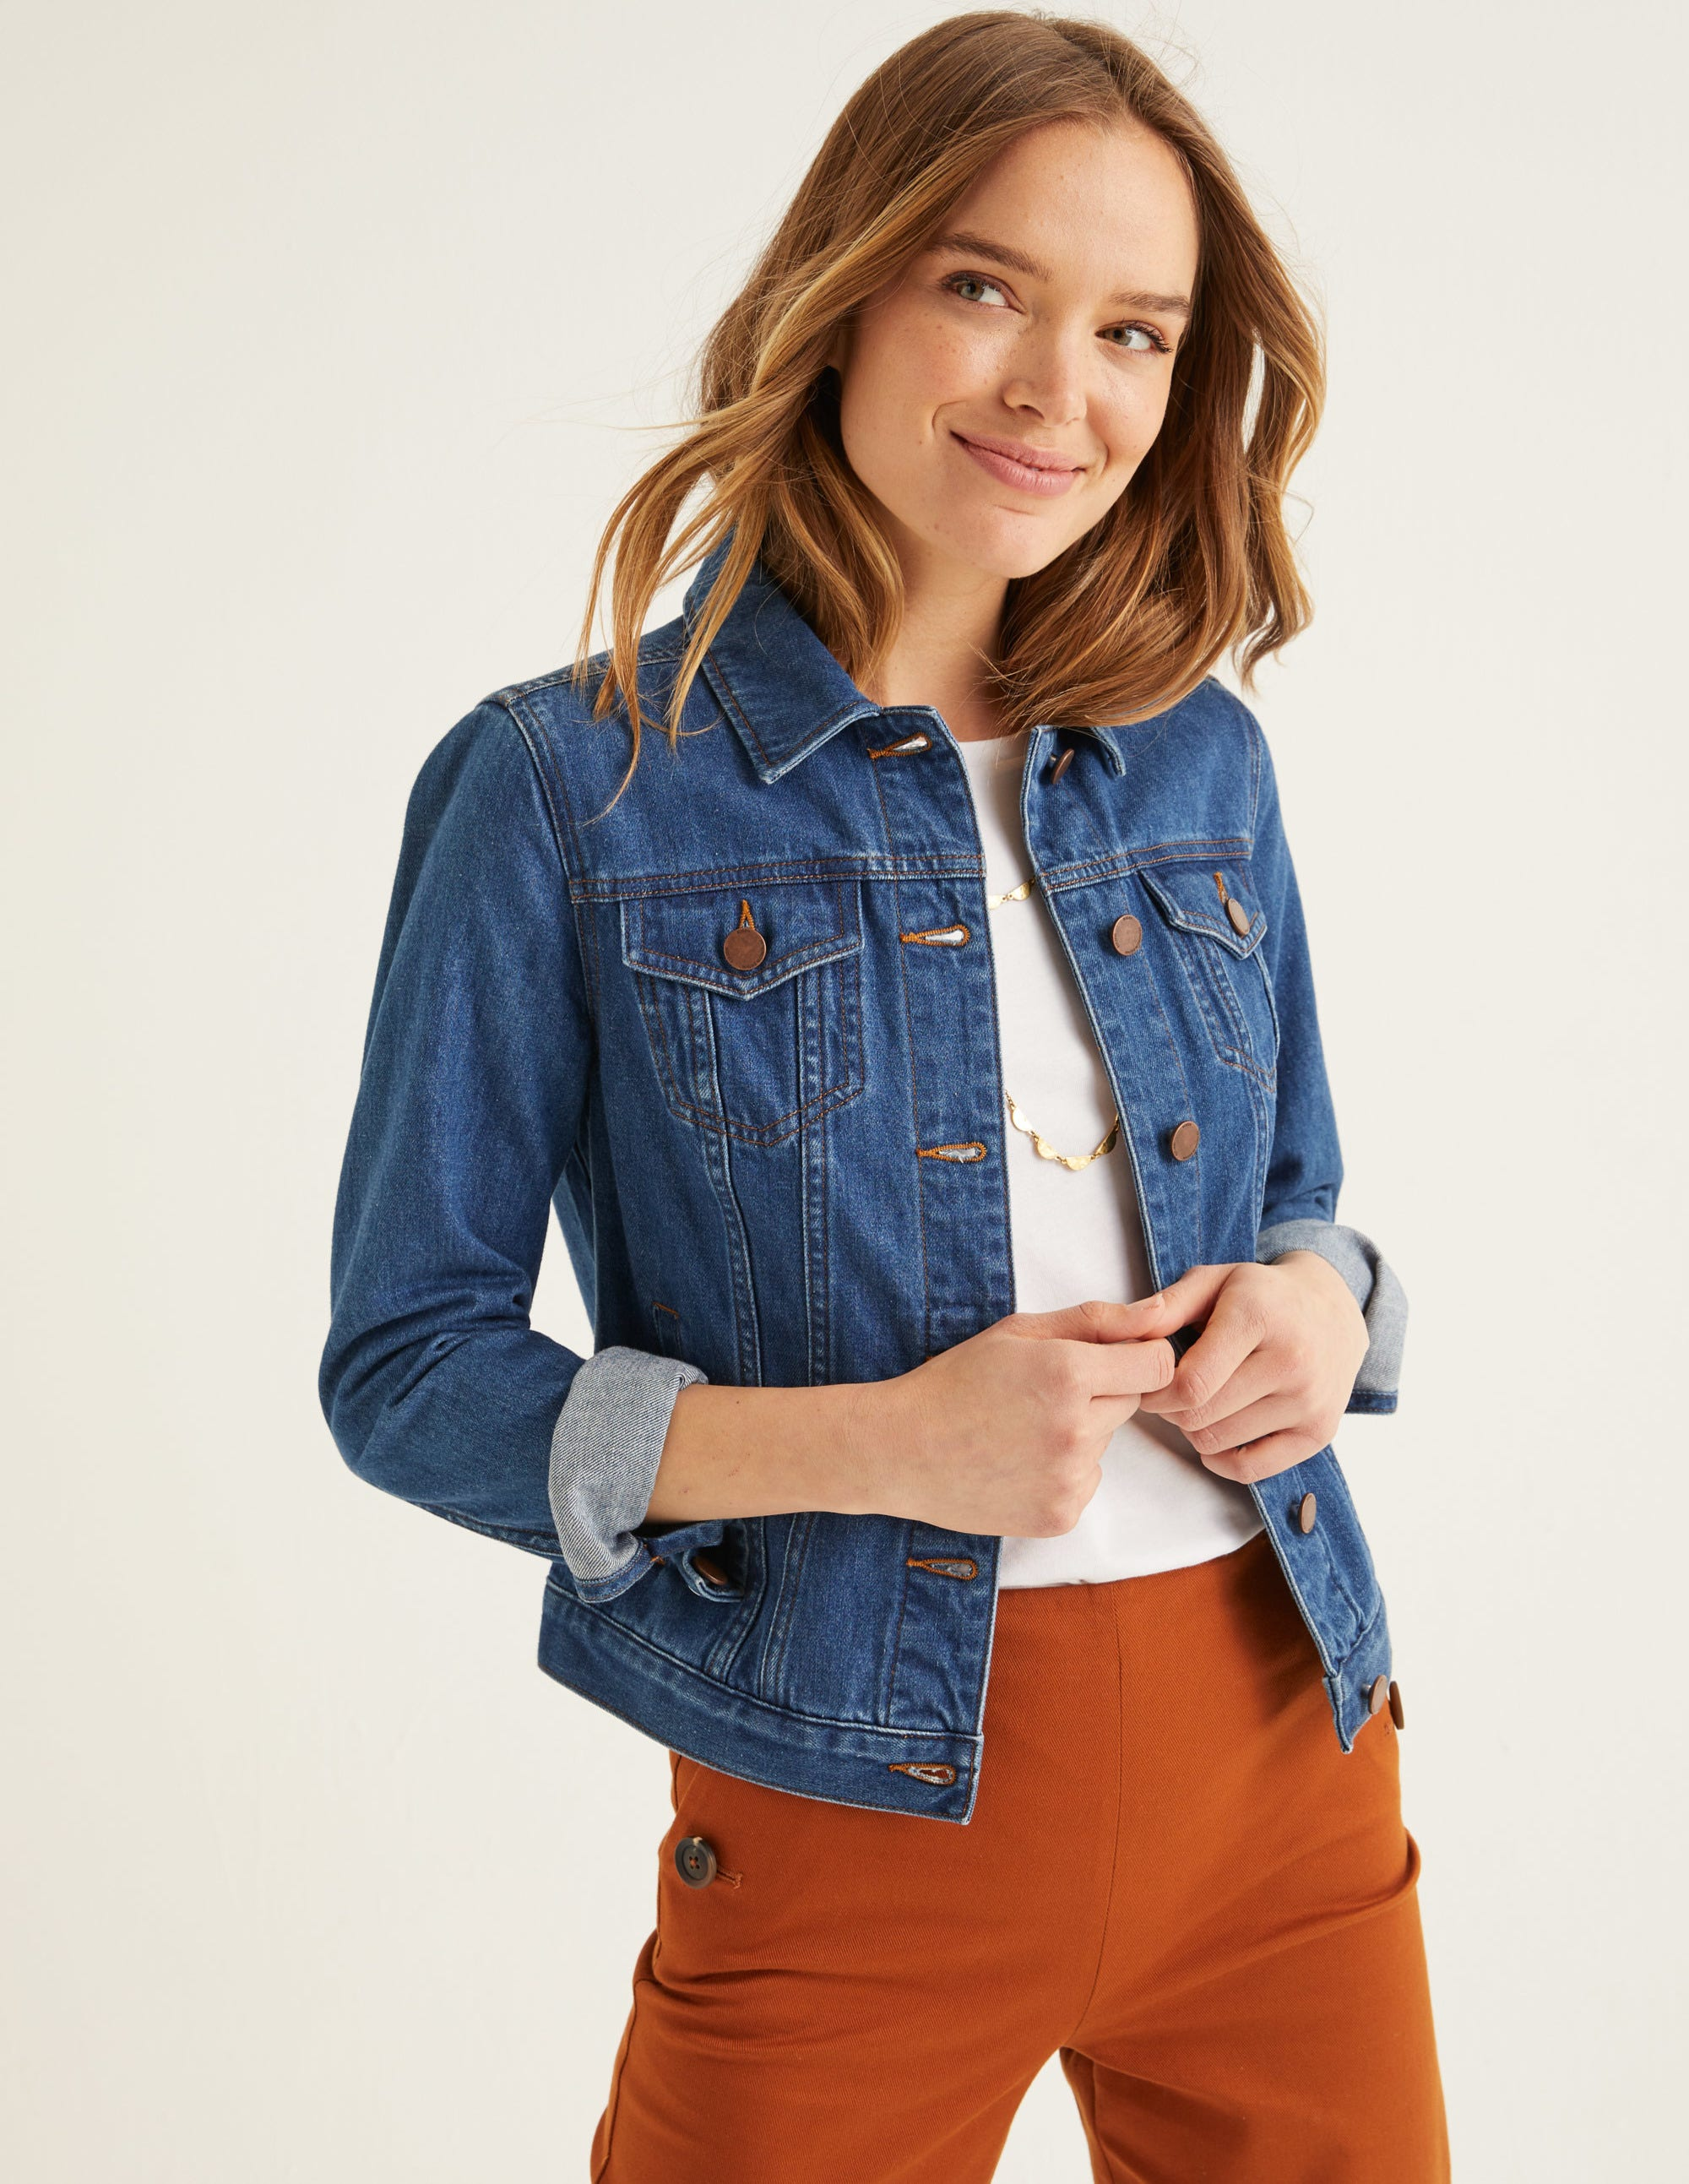 f6a9b22a7ee39 Classic Denim Jacket - Vintage | Boden UK